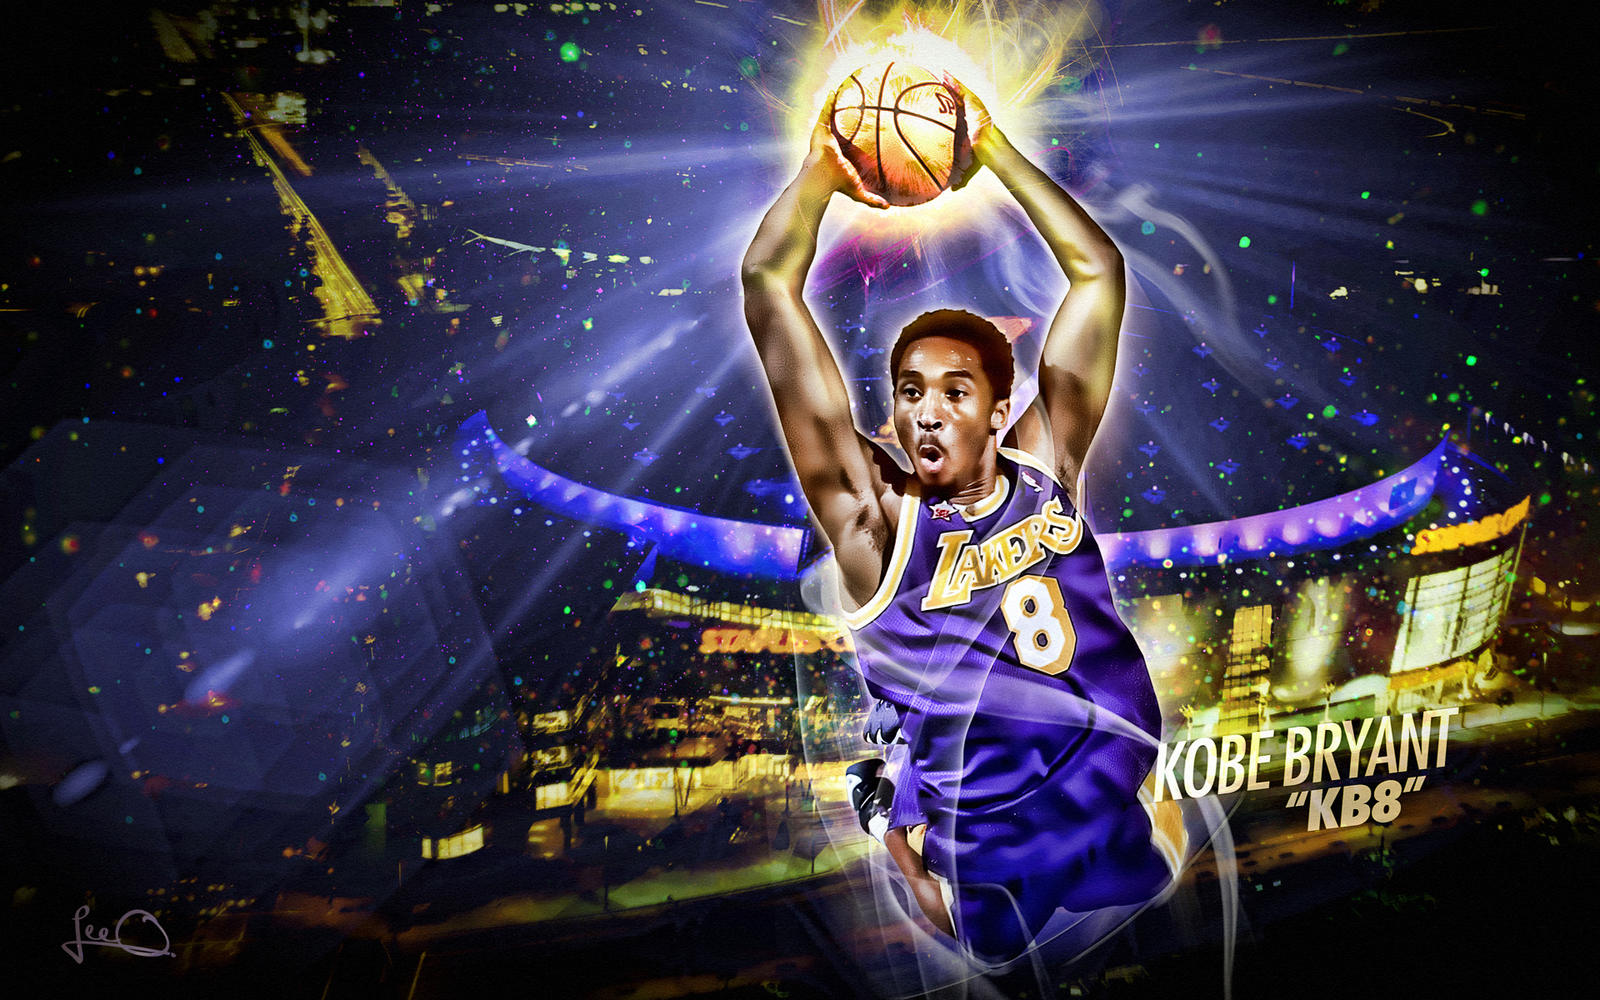 Cool basketball wallpapers all basketball scores info - Cool nba background ...